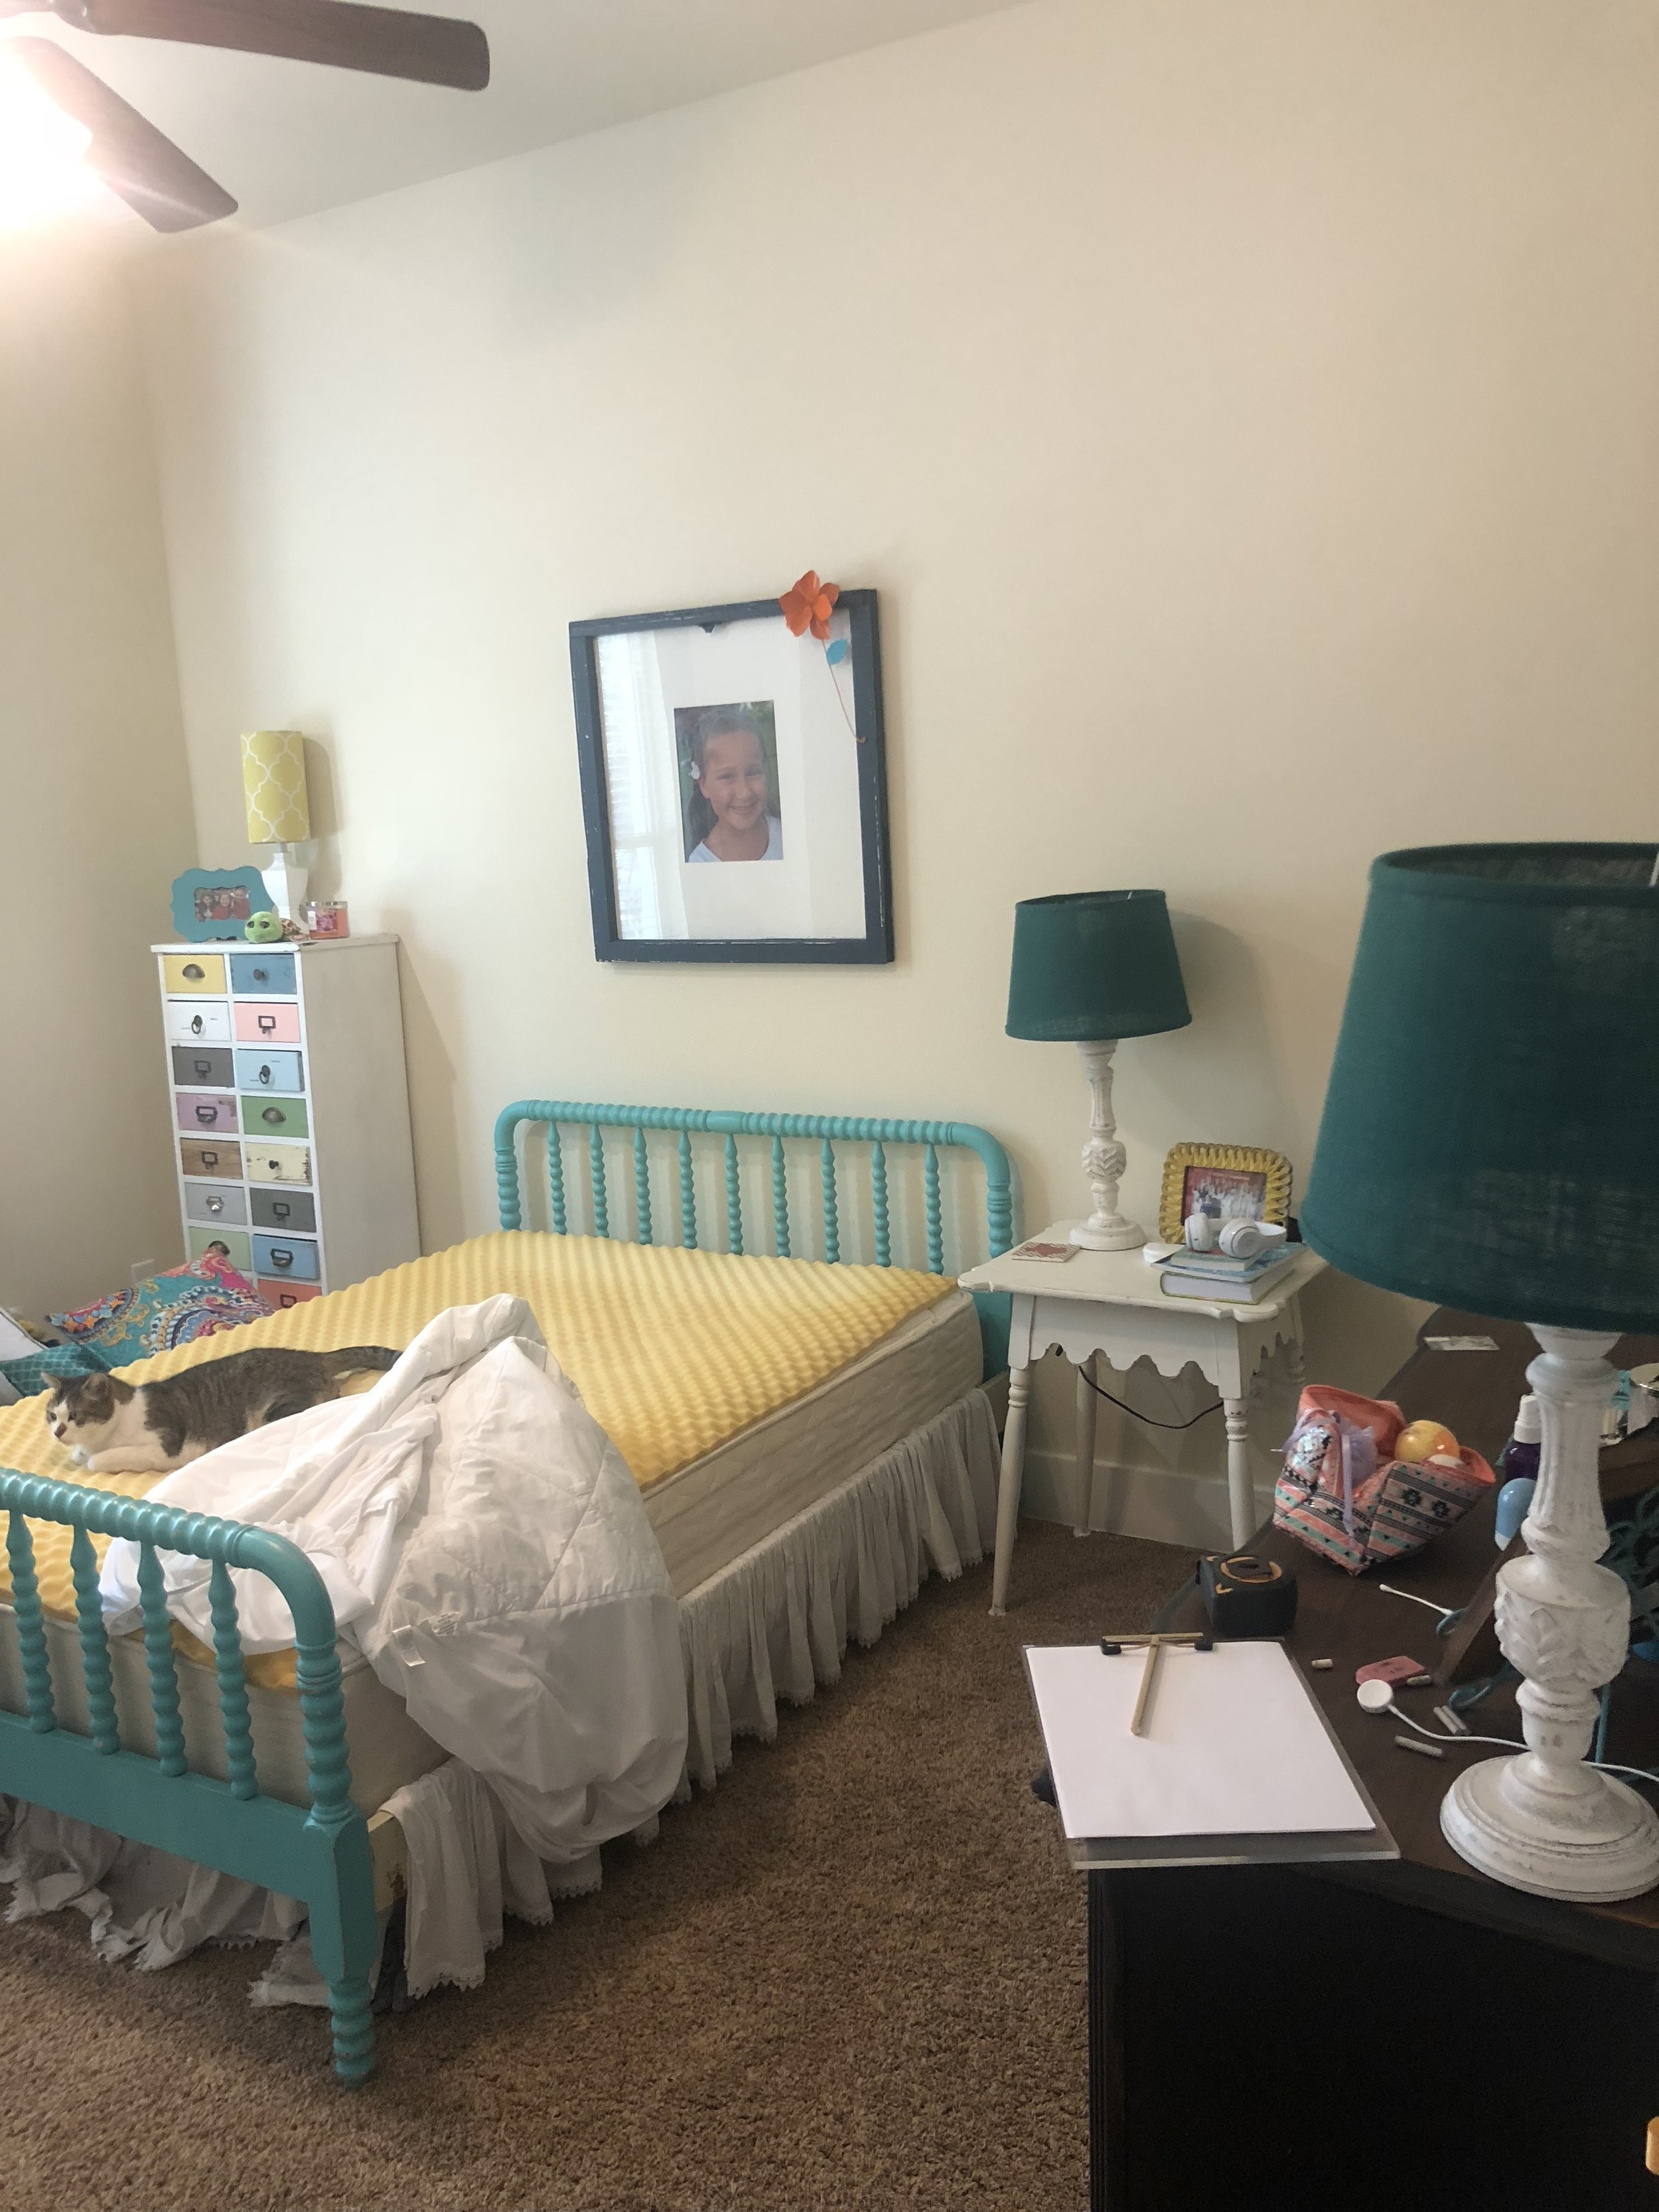 Love-Ding-Blog-Project-Update-Spruce-Kit-Before-Picture-Allisons-Teen-Room-Spruce-1.JPG